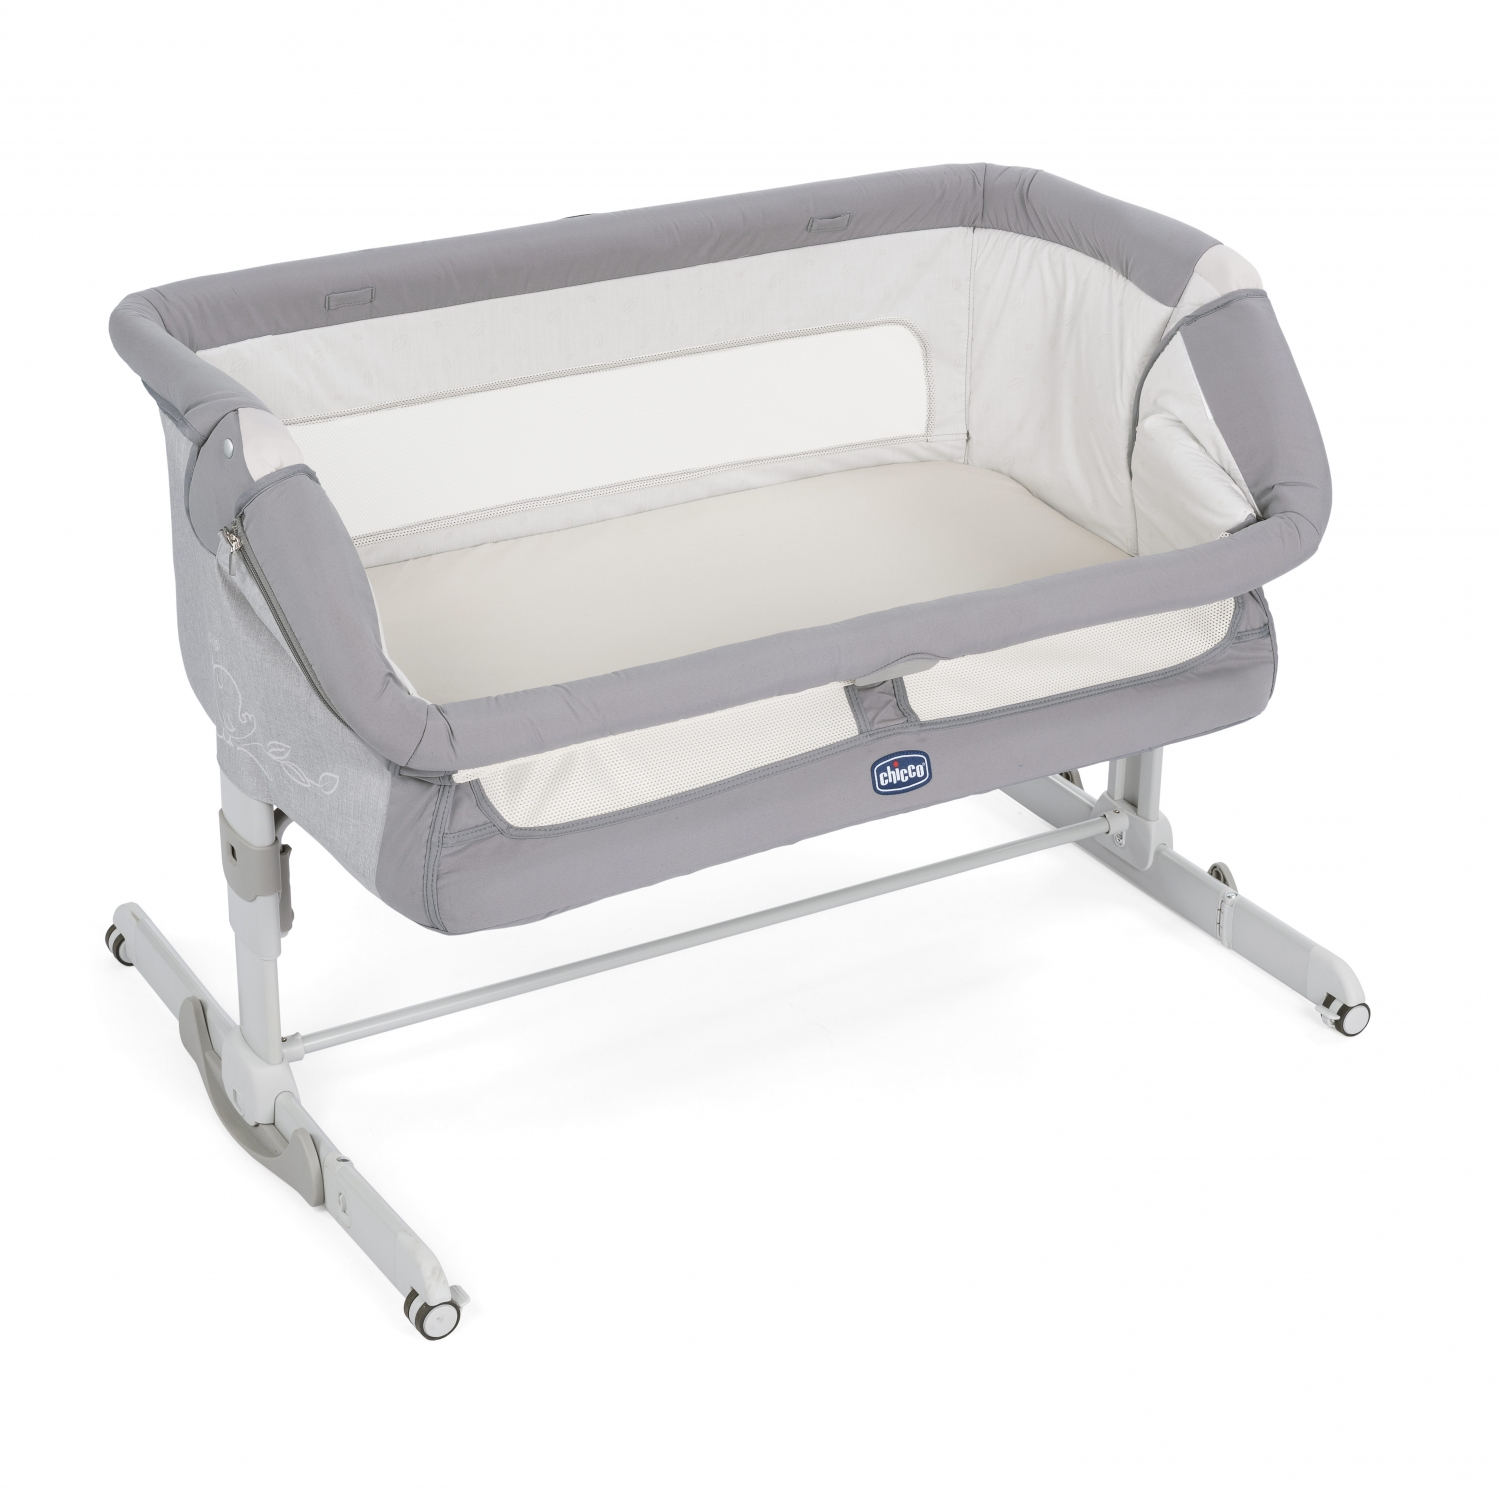 New Chicco Next 2 Me Dream Bed Side Crib Drop Side - Graphite